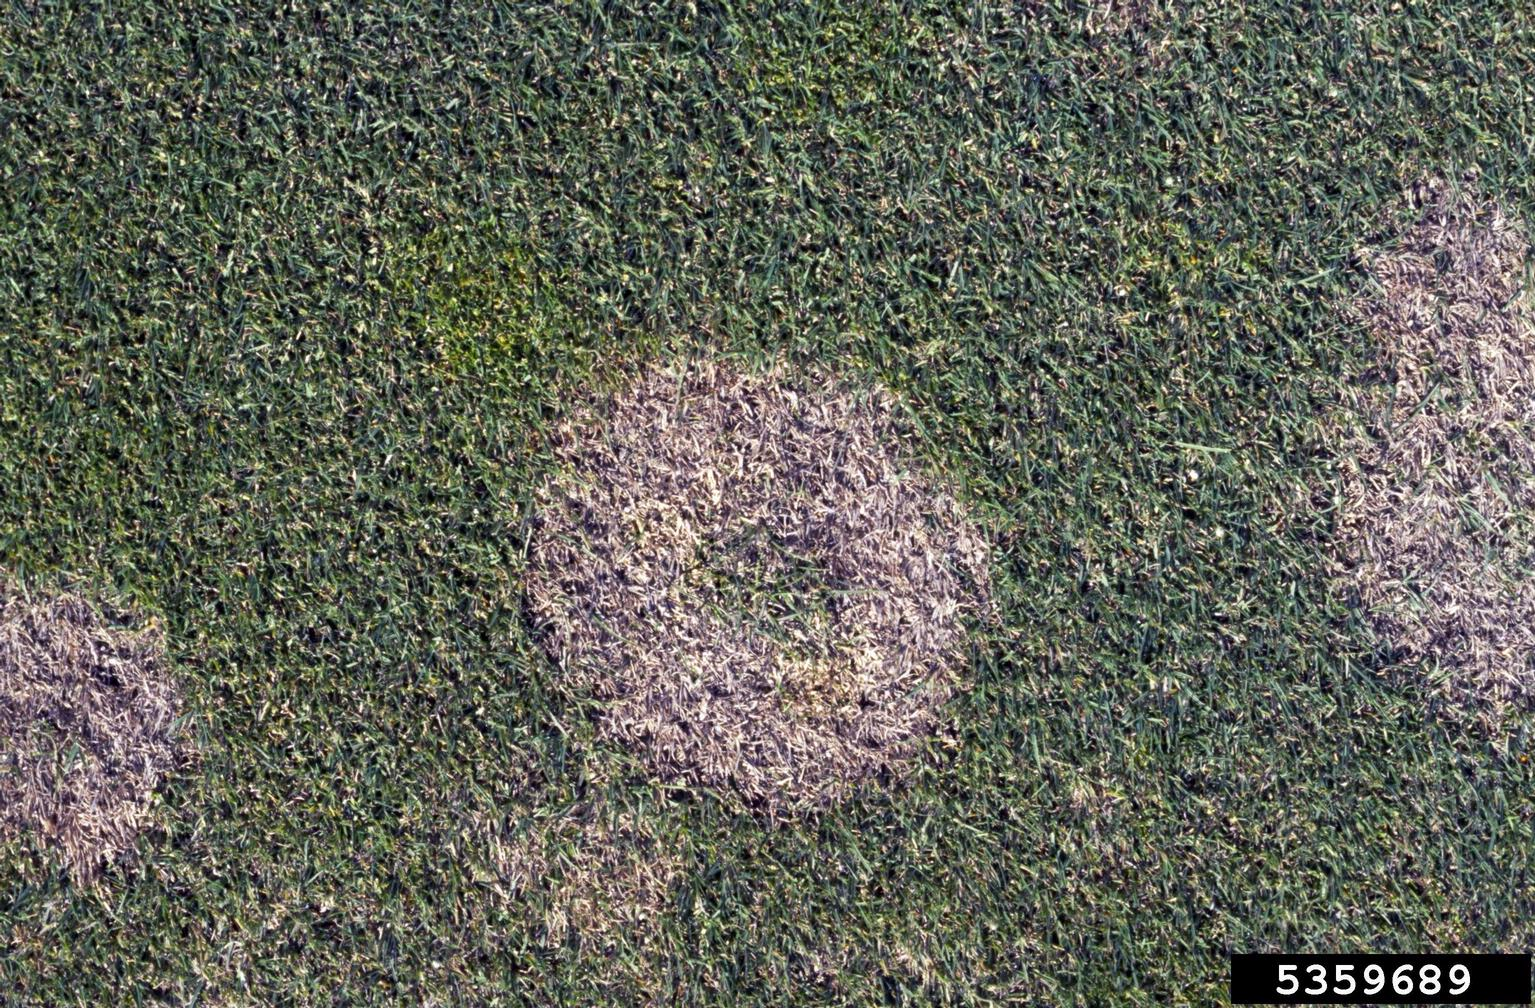 Snow mold treatment what to do for snow mold in grass - What to do about mold ...